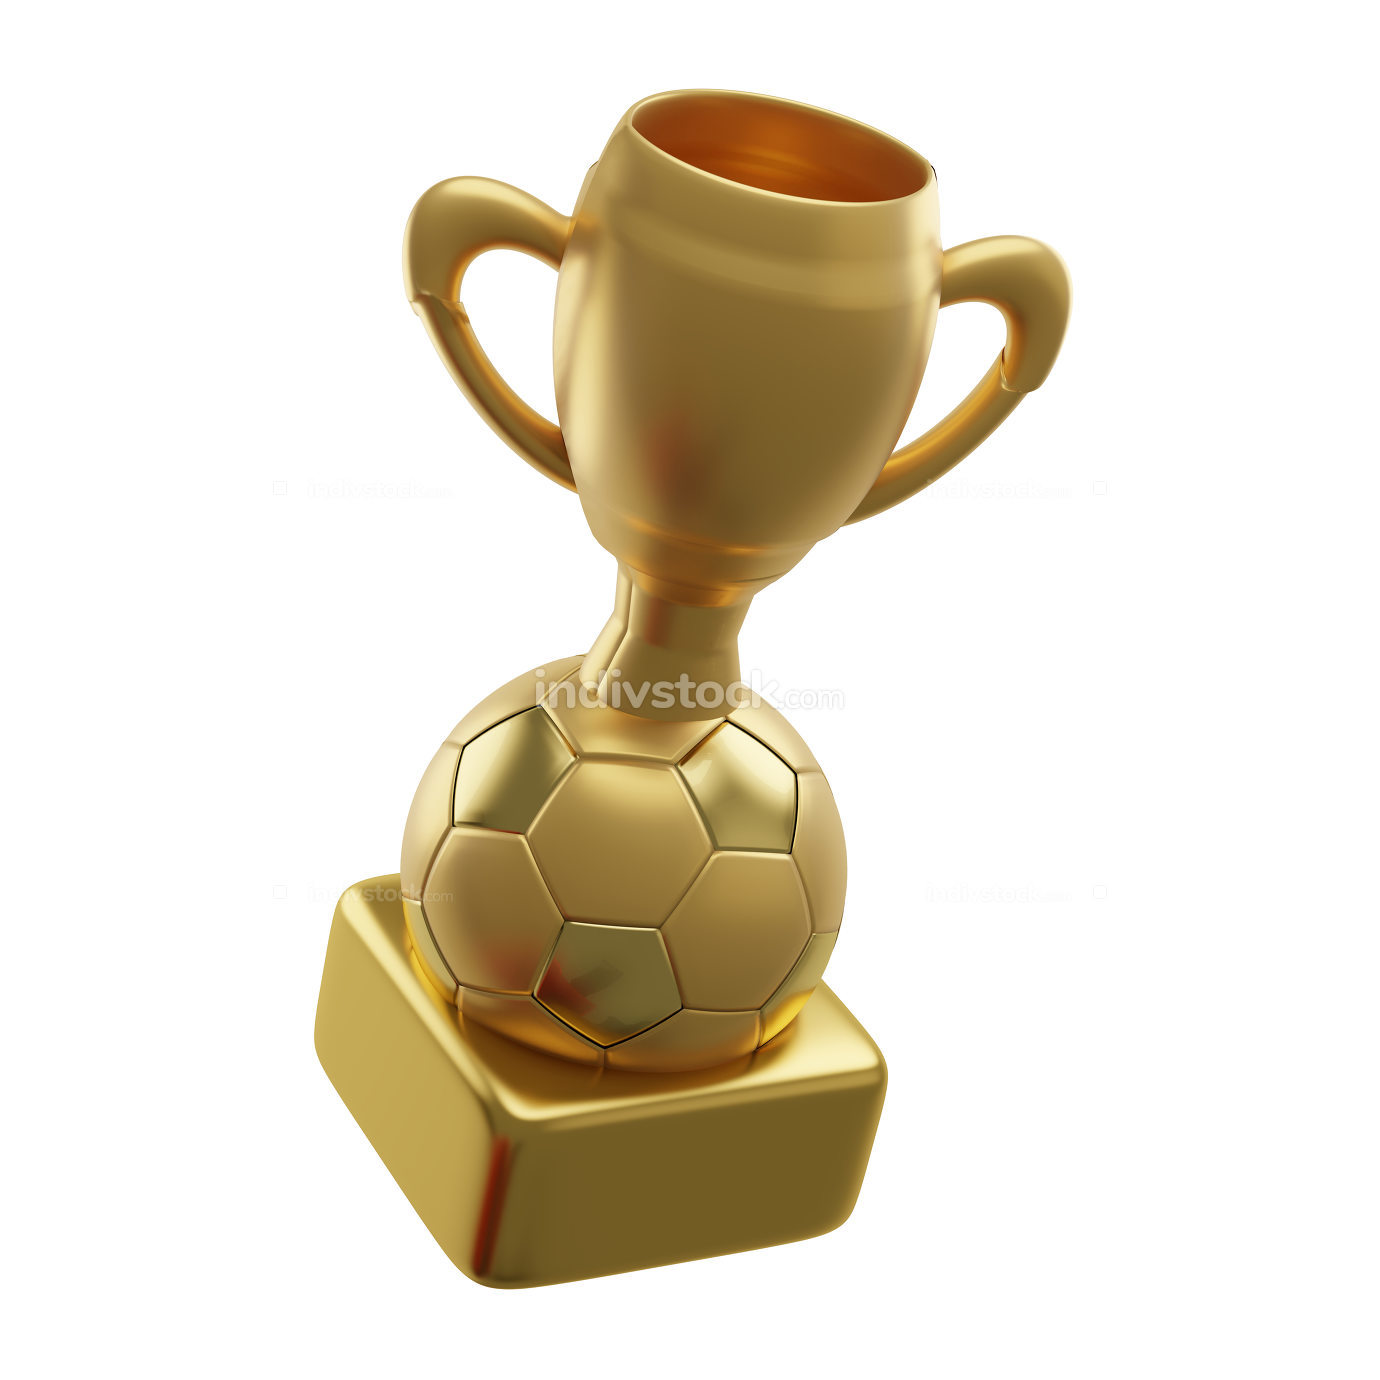 golden soccer ball trophy 3d-illustration